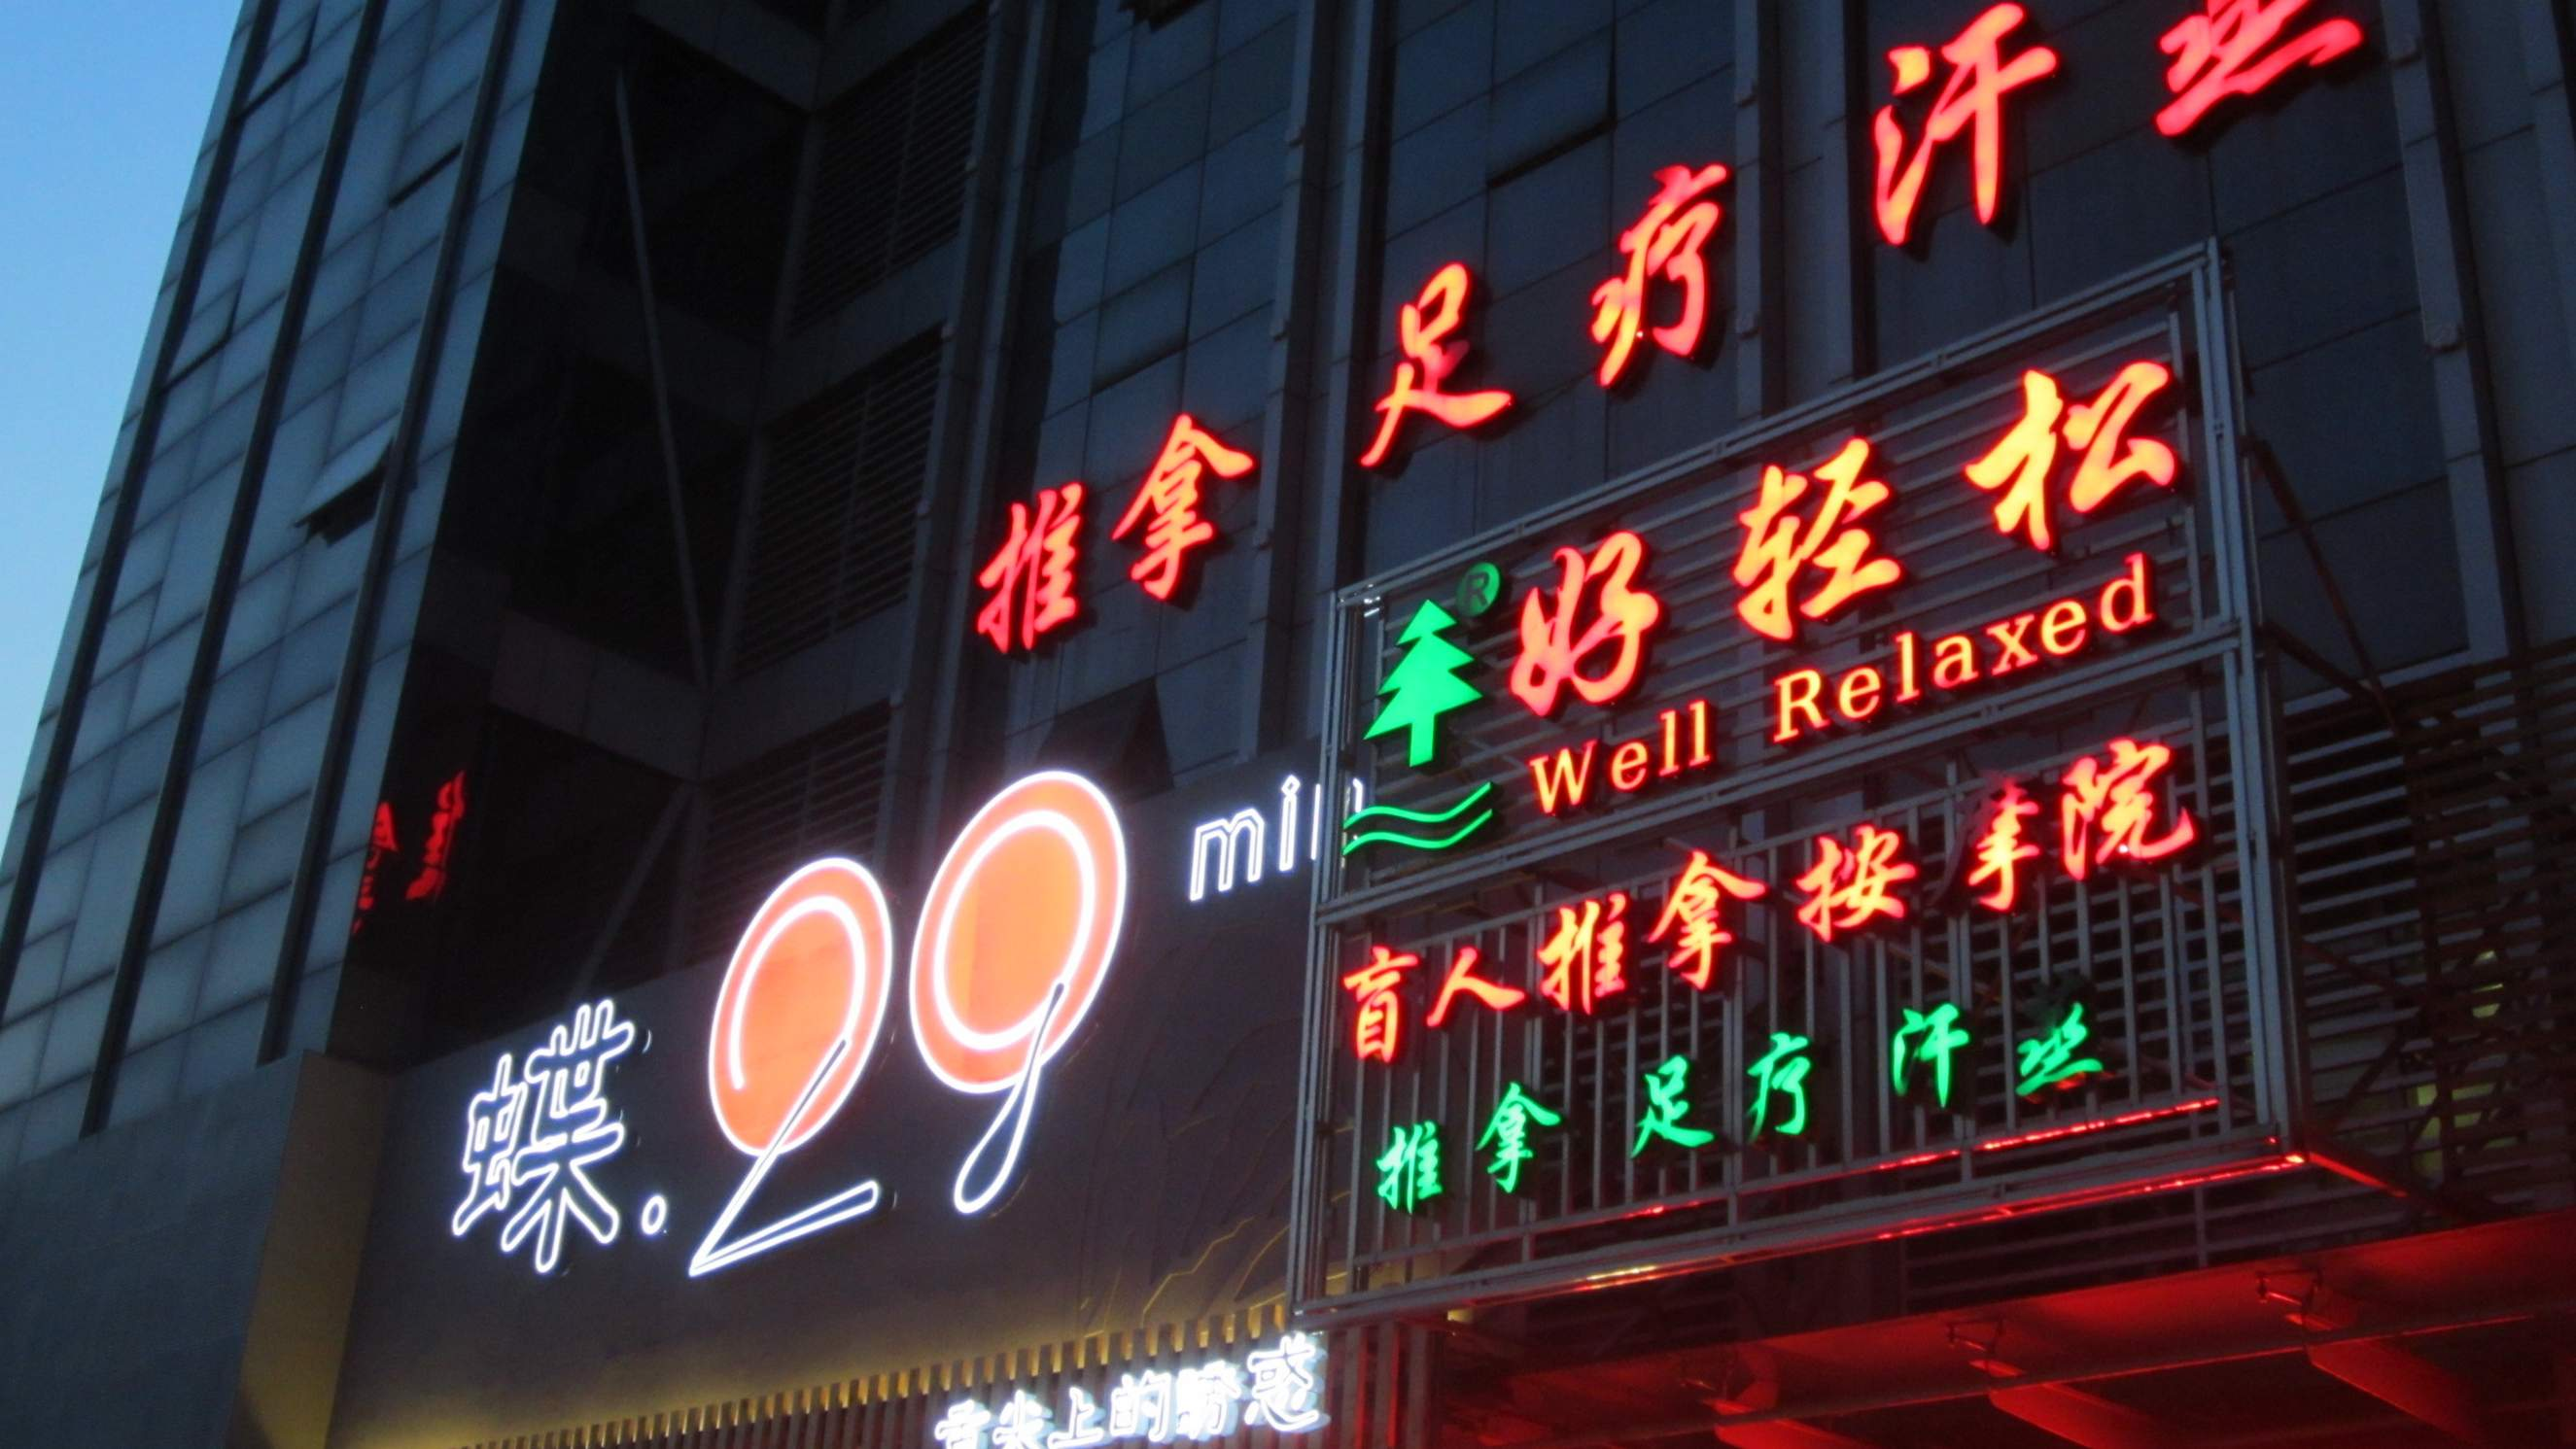 The Well Relaxed Massage Center in Wuxi, China.